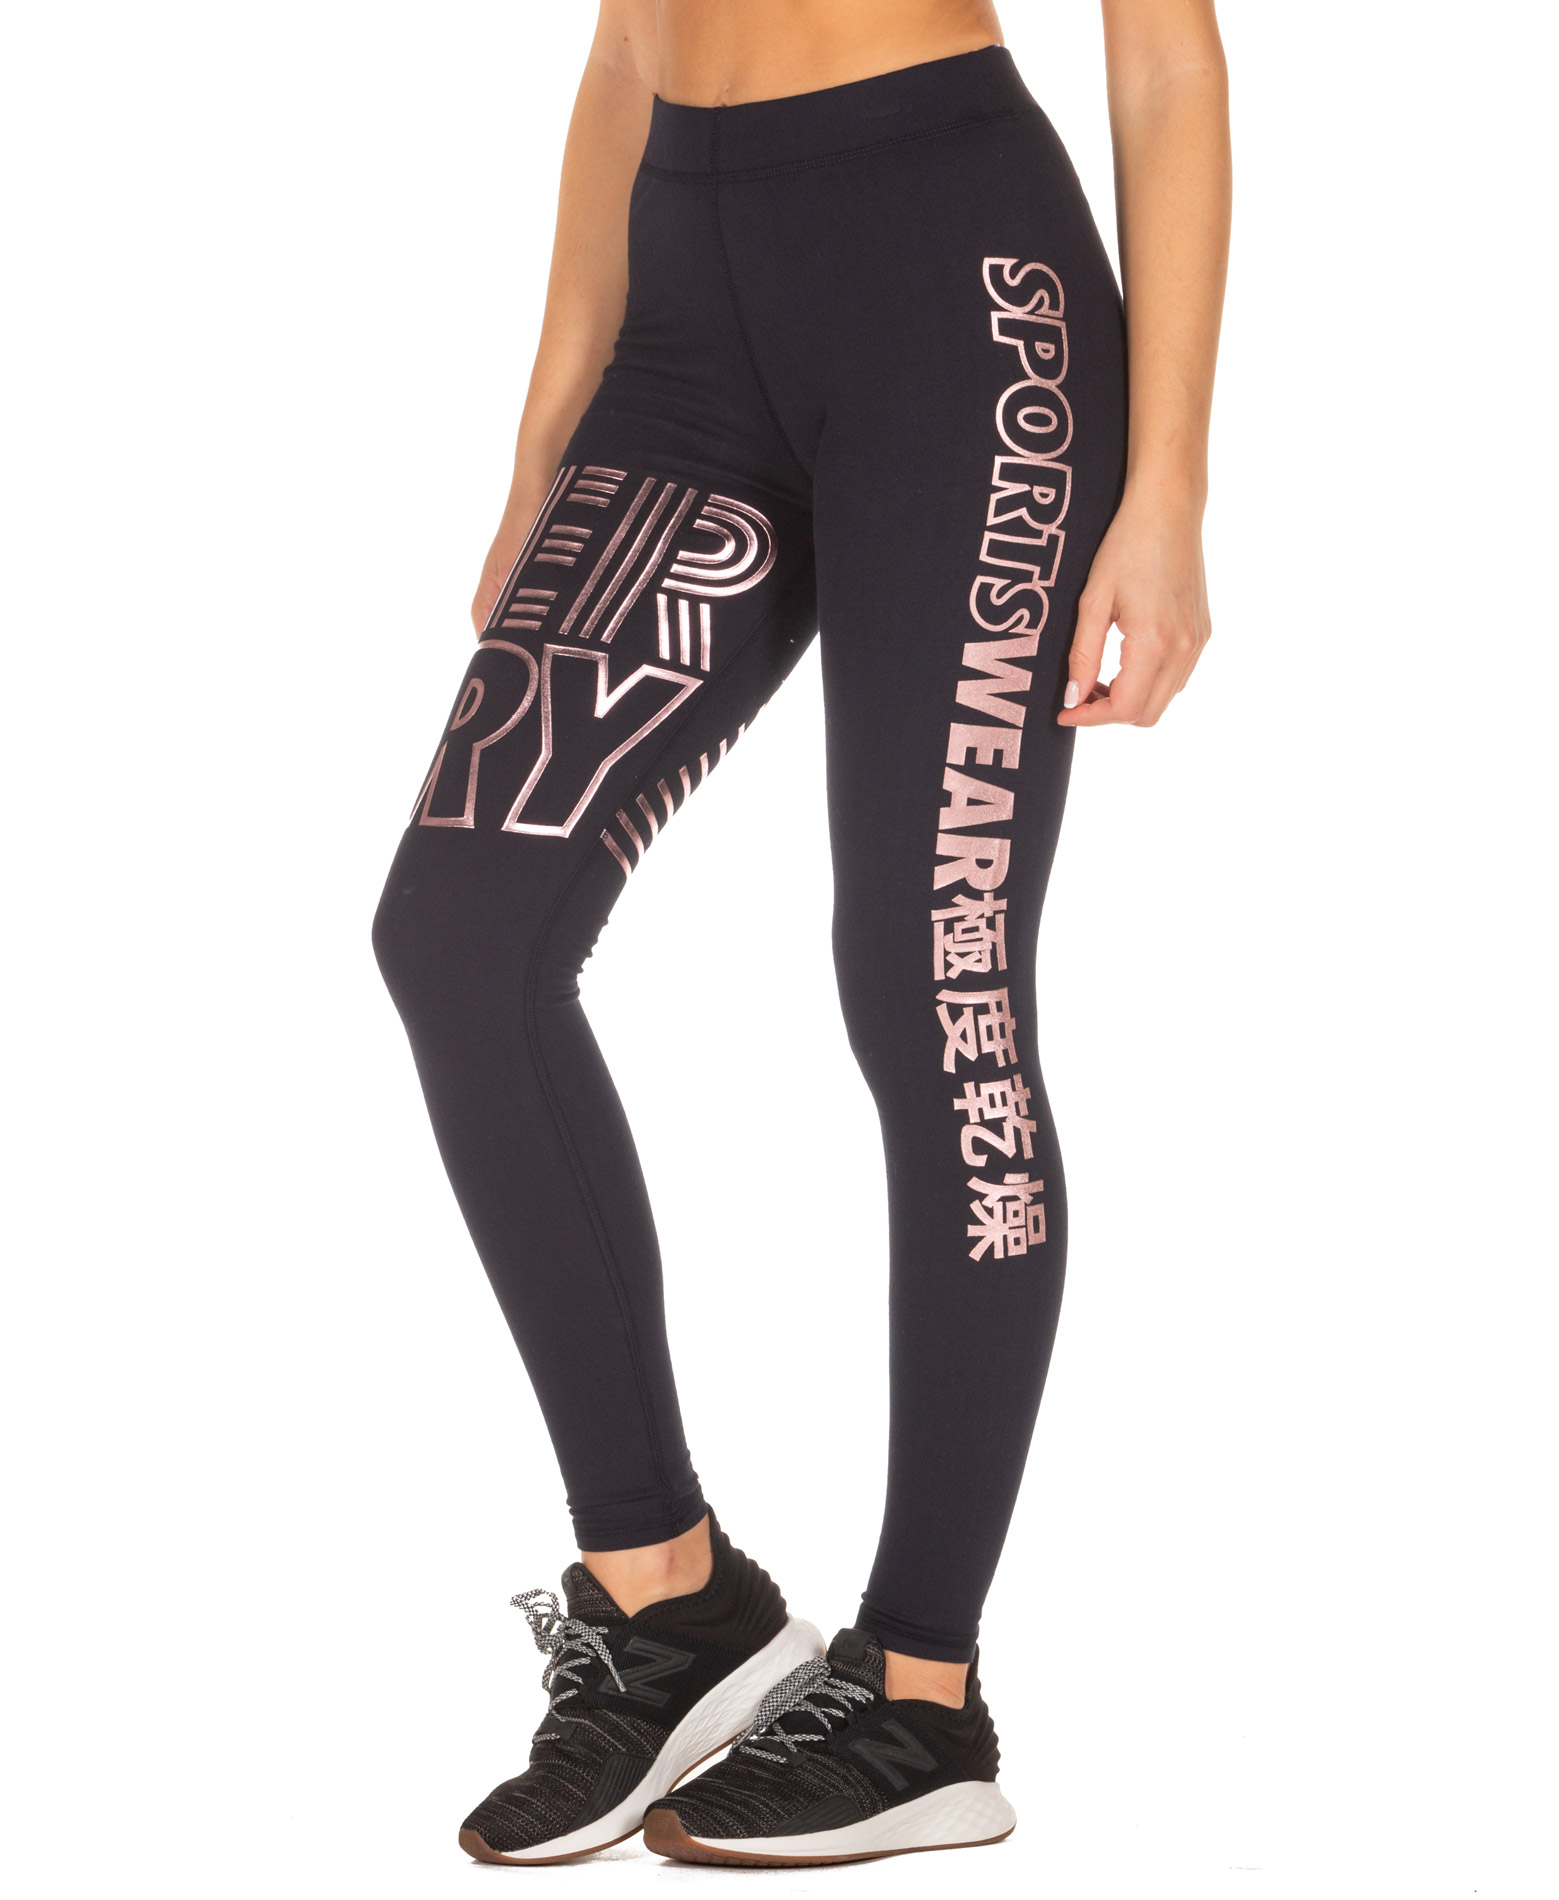 SUPERDRY FLASH SPORT LEGGING GS3106TU-24S Μπλε